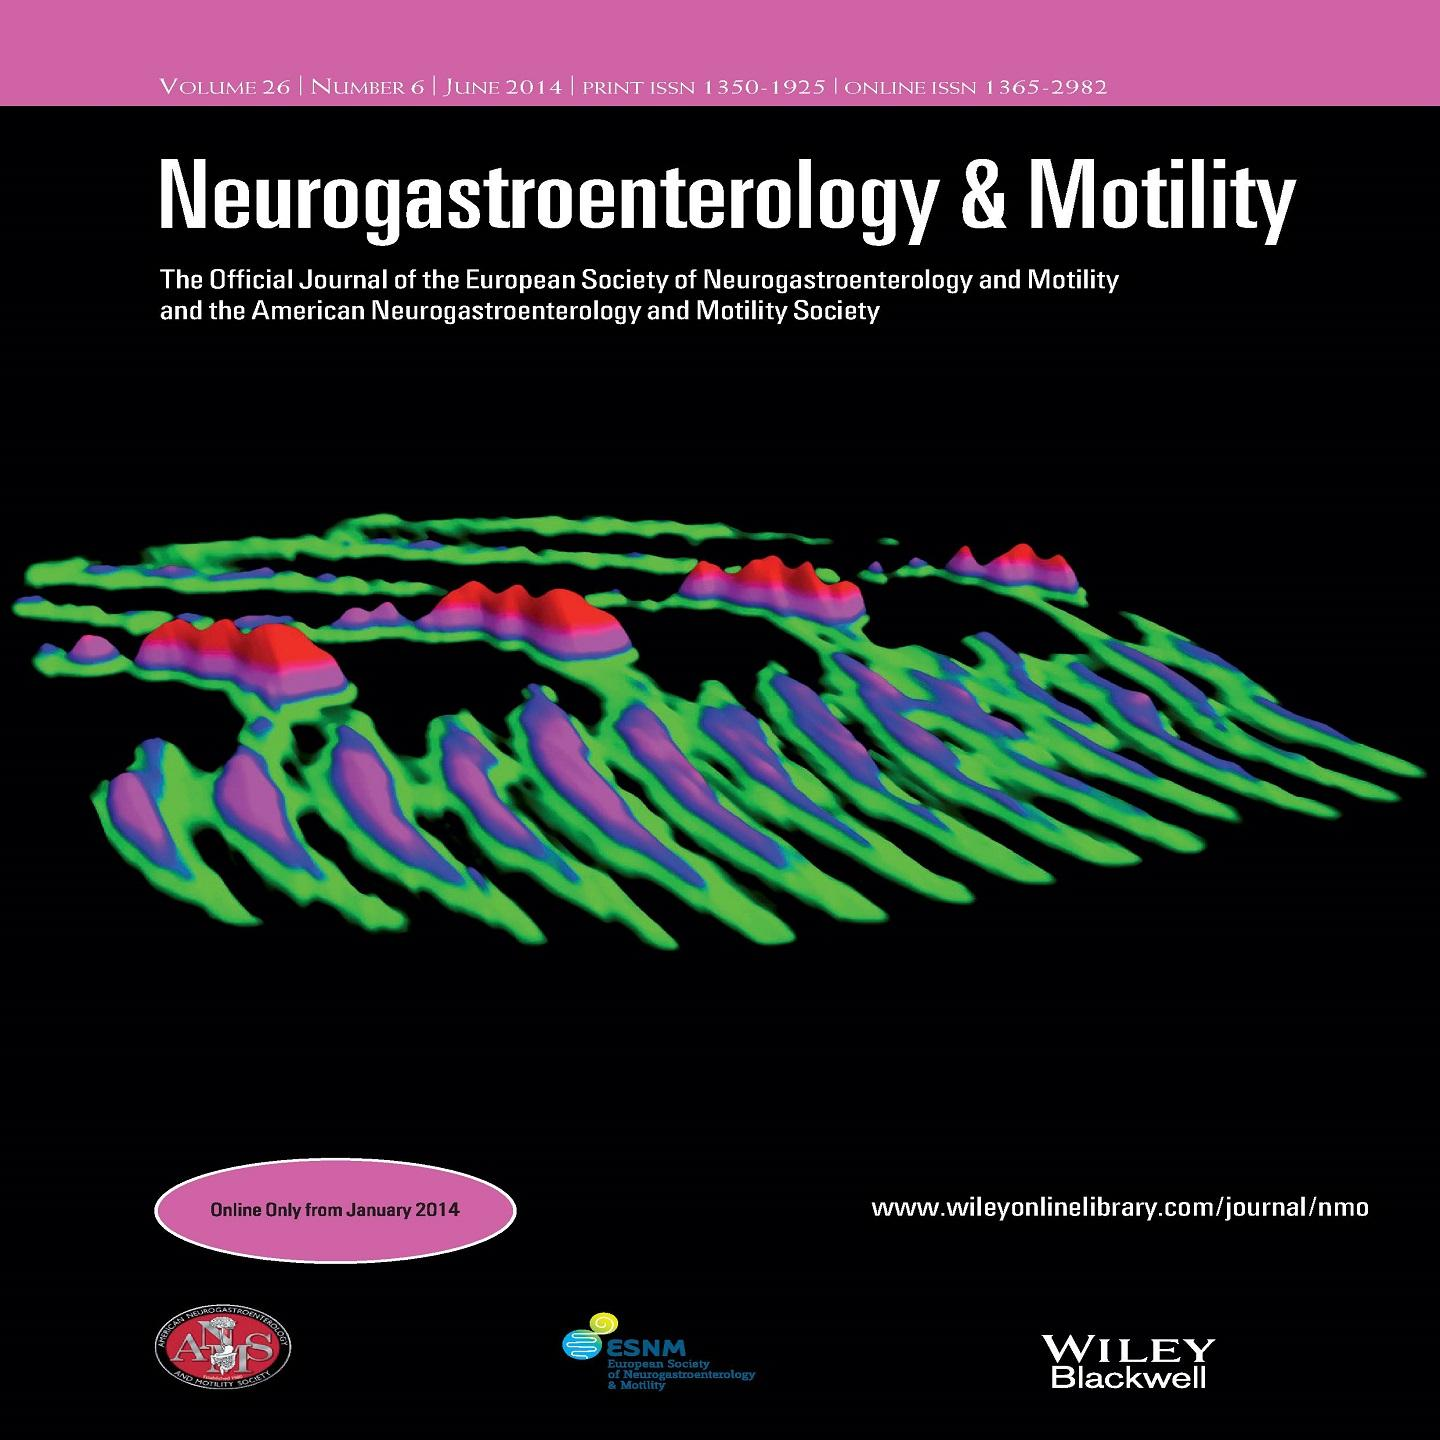 Neurogastroenterology & Motility - February 2016